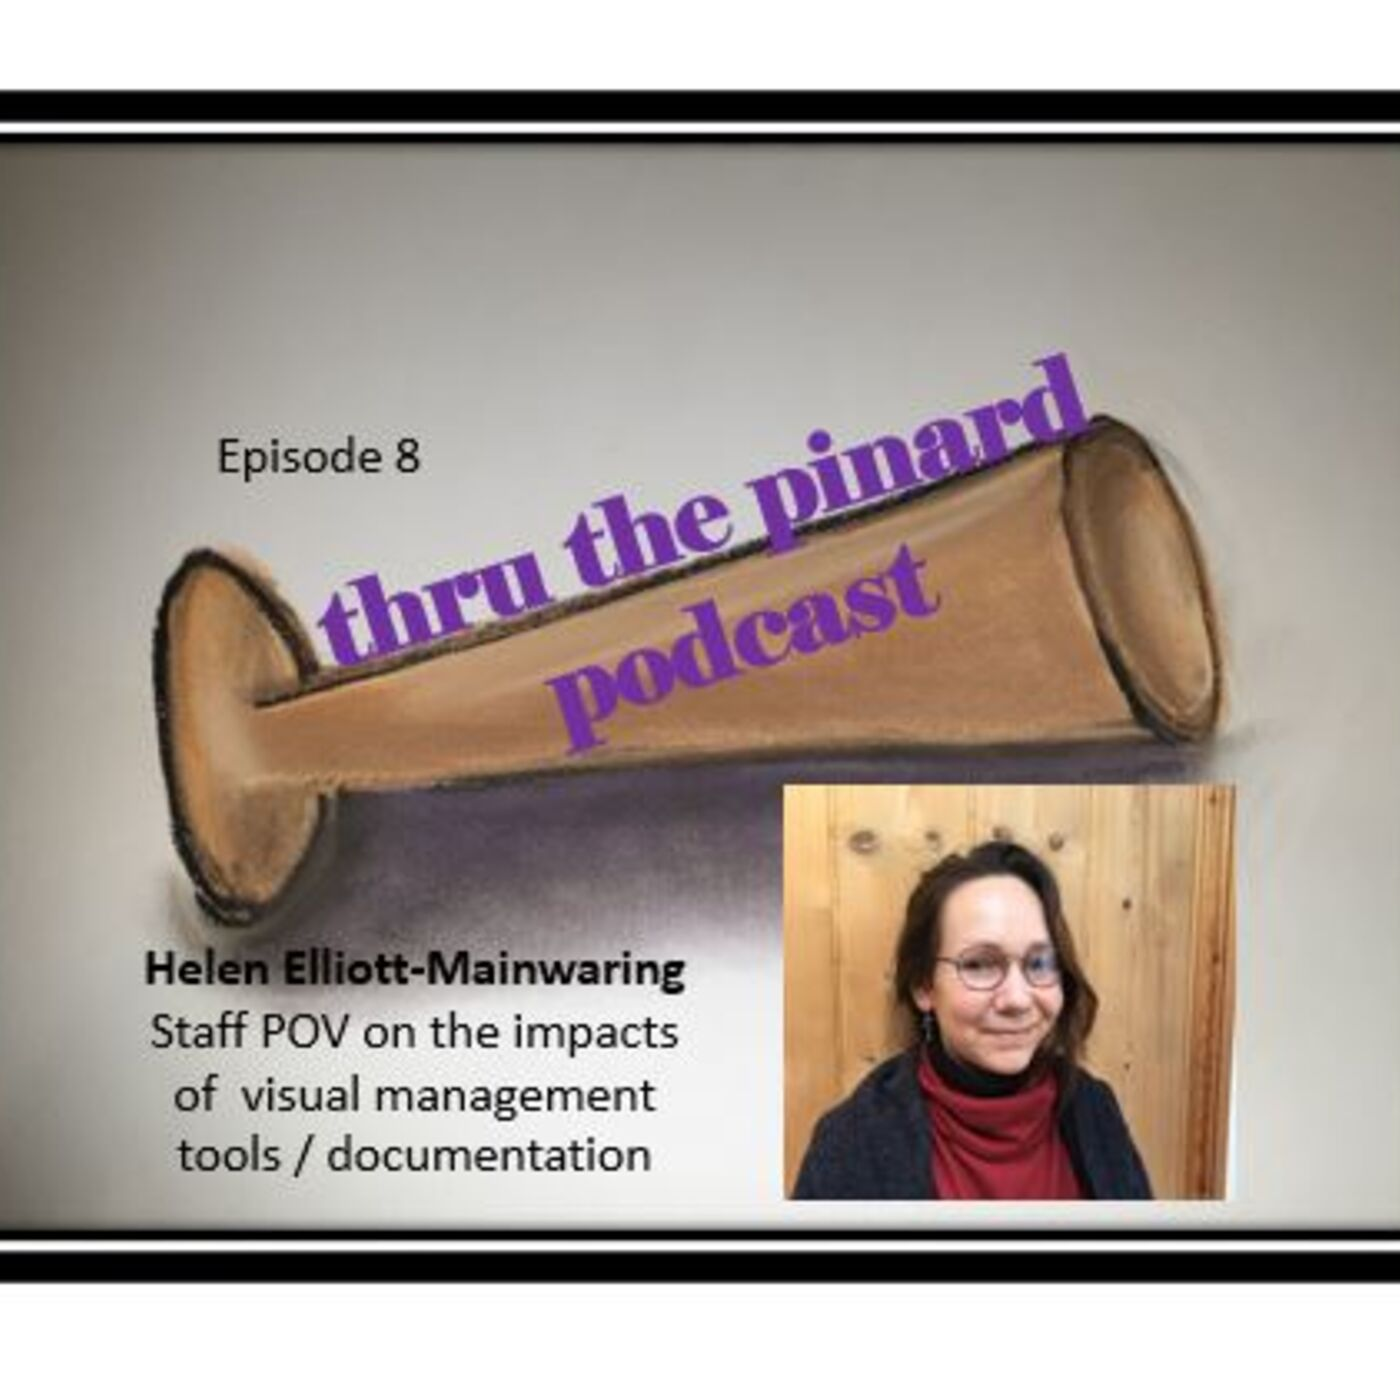 Episode 8 - Helen Elliott-Mainwaring & The role of visual management tools for the coordination of teams in healthcare